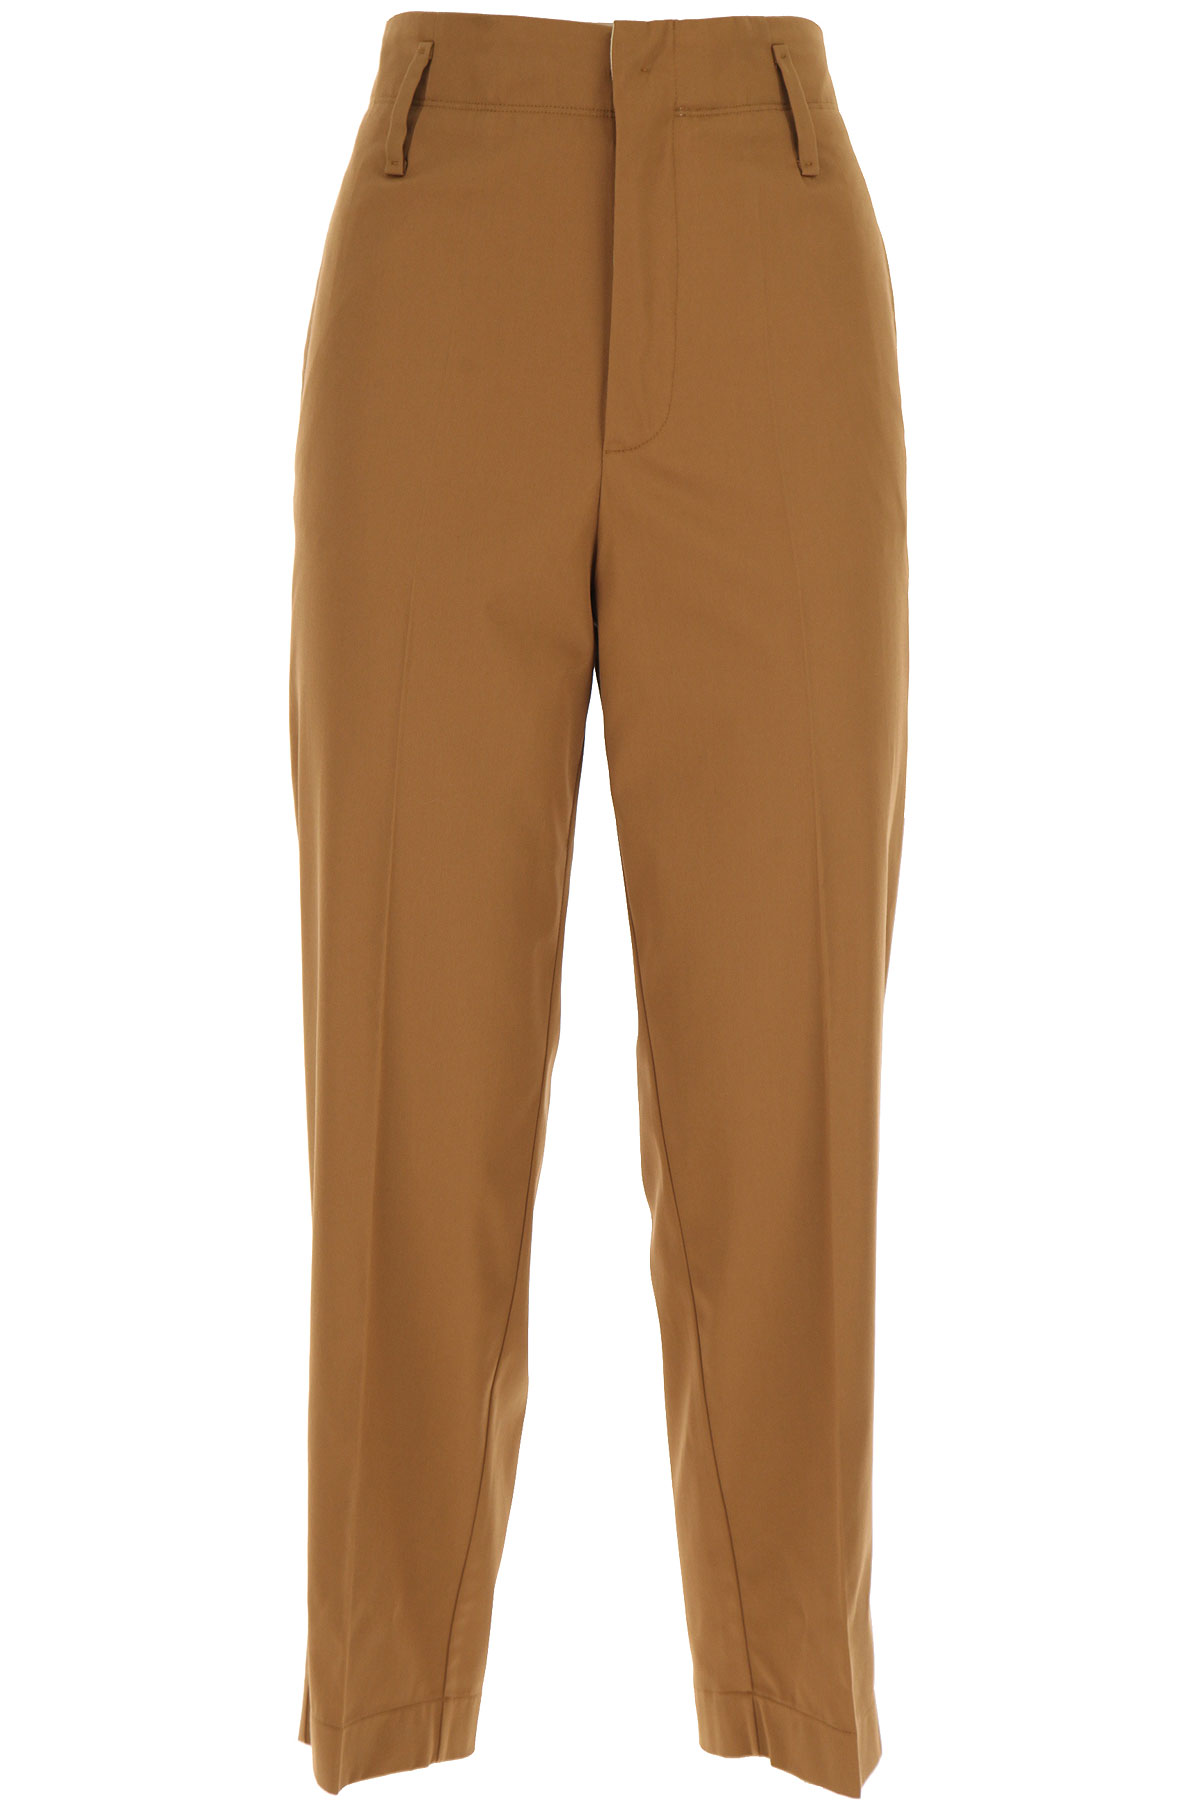 Forte Forte Pants for Women On Sale, Tobacco, Cotton, 2019, 0 - XS - IT 38 1 - S - IT 40 2 - M - IT 42